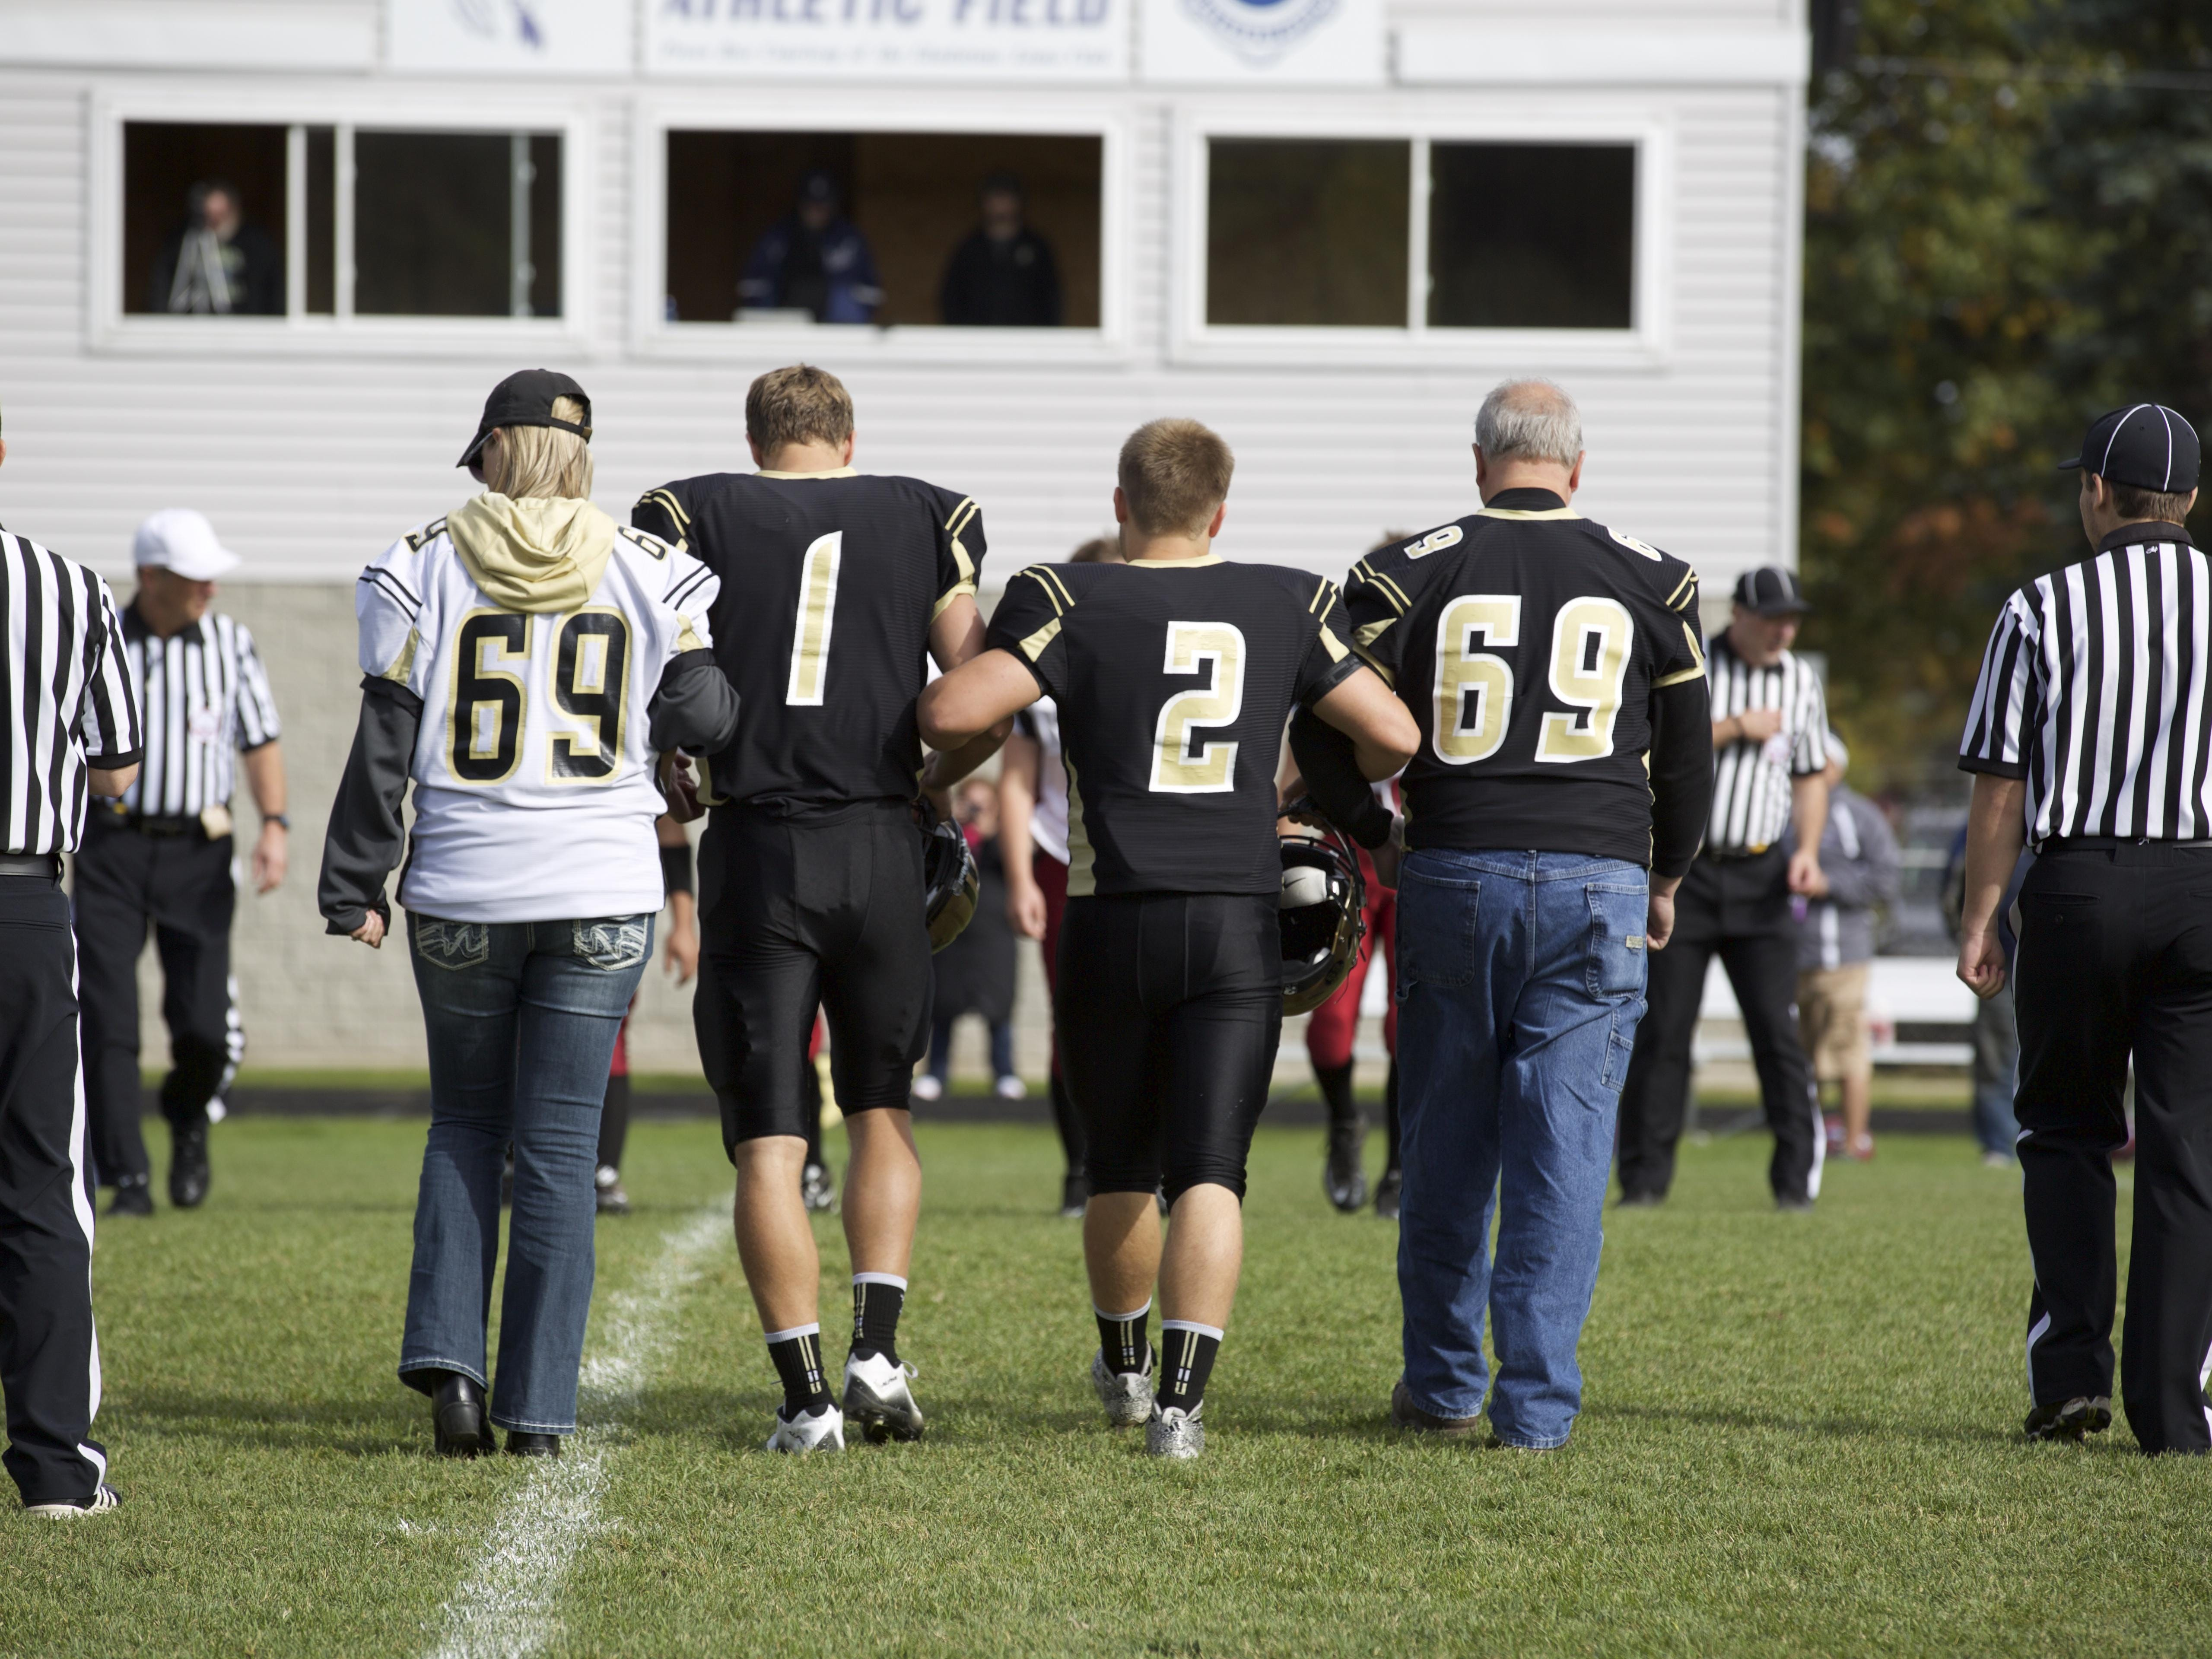 Mitchell Snyder's parents, wearing his No. 69, walk out with the St. Ignace captains before the game against Ironwood on Oct. 10. St. Ignace won, 69-12.